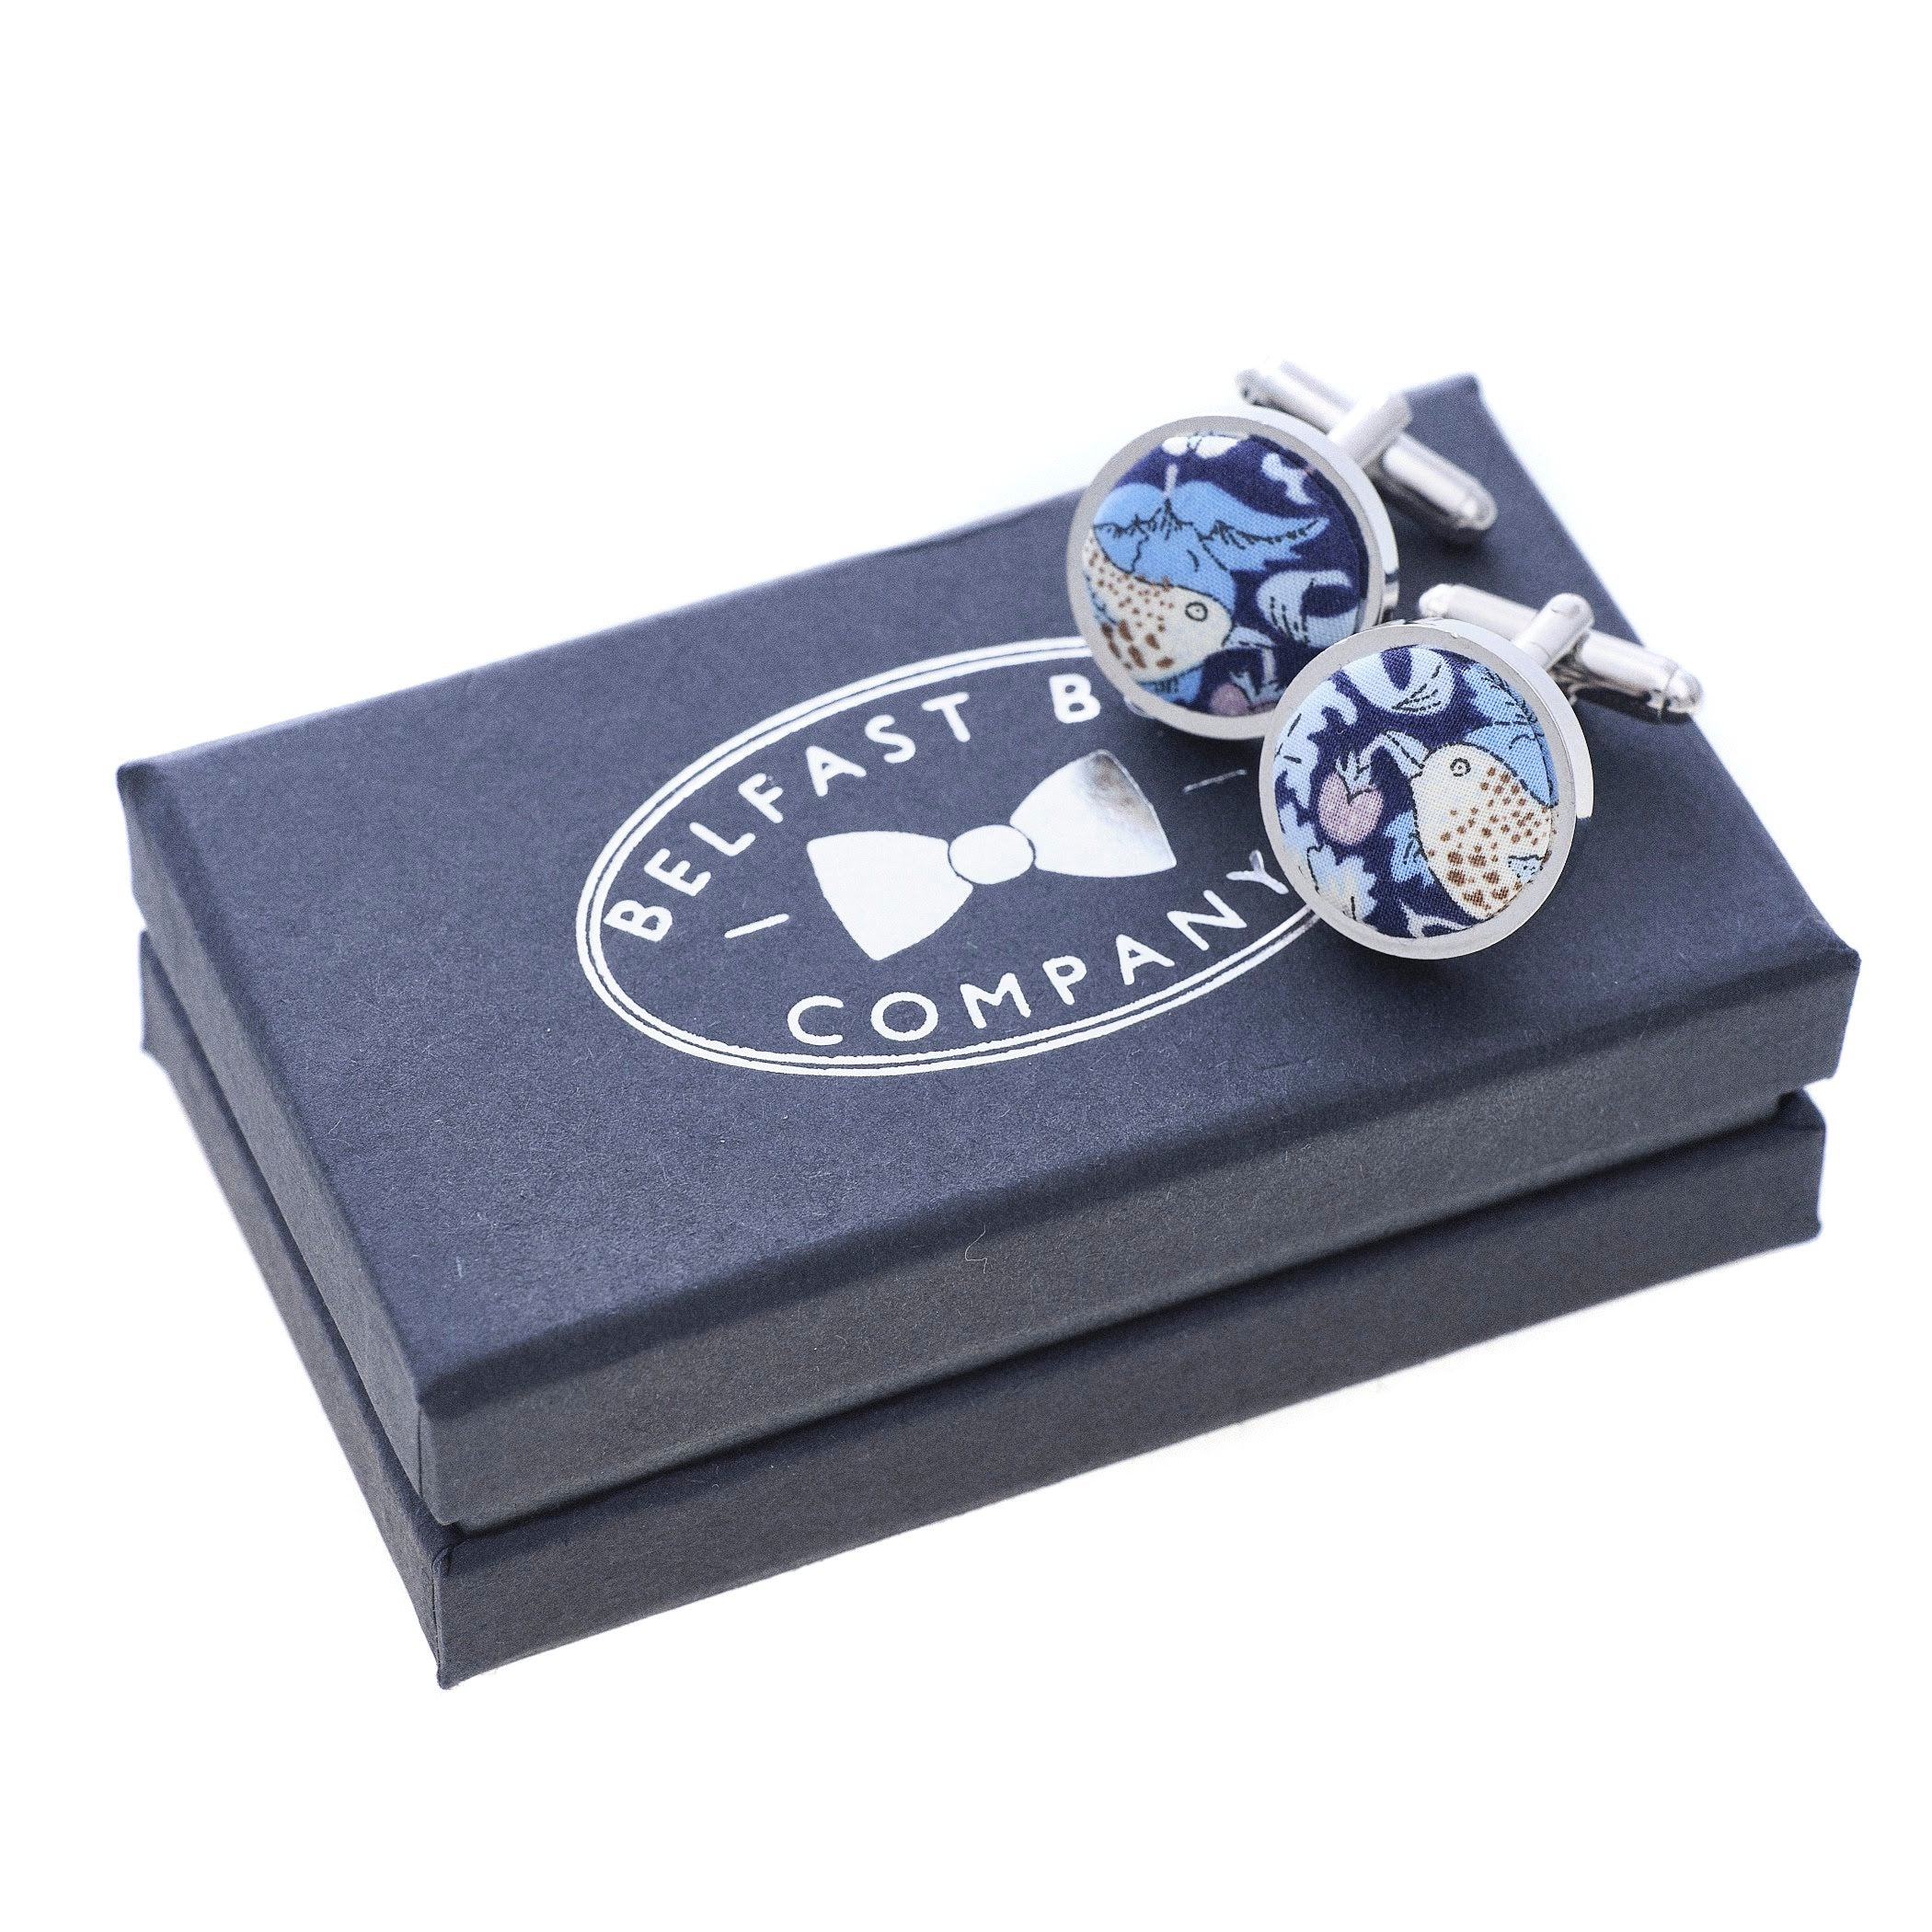 Liberty of London Cufflinks in Navy Birds Stawberry Thief Print by the Belfast Bow Company